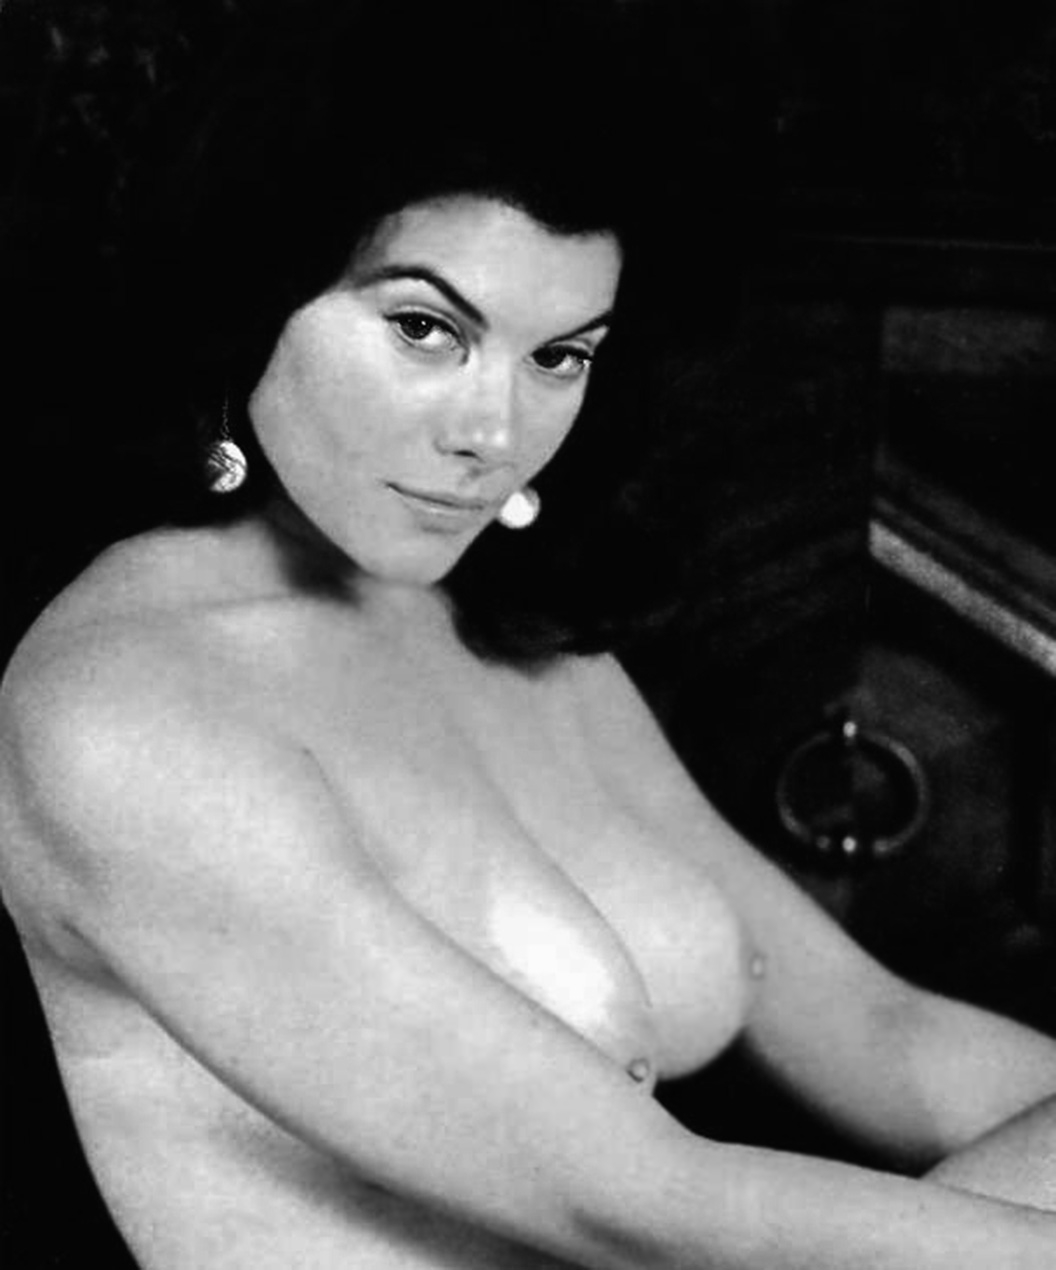 All adrienne barbeau porr